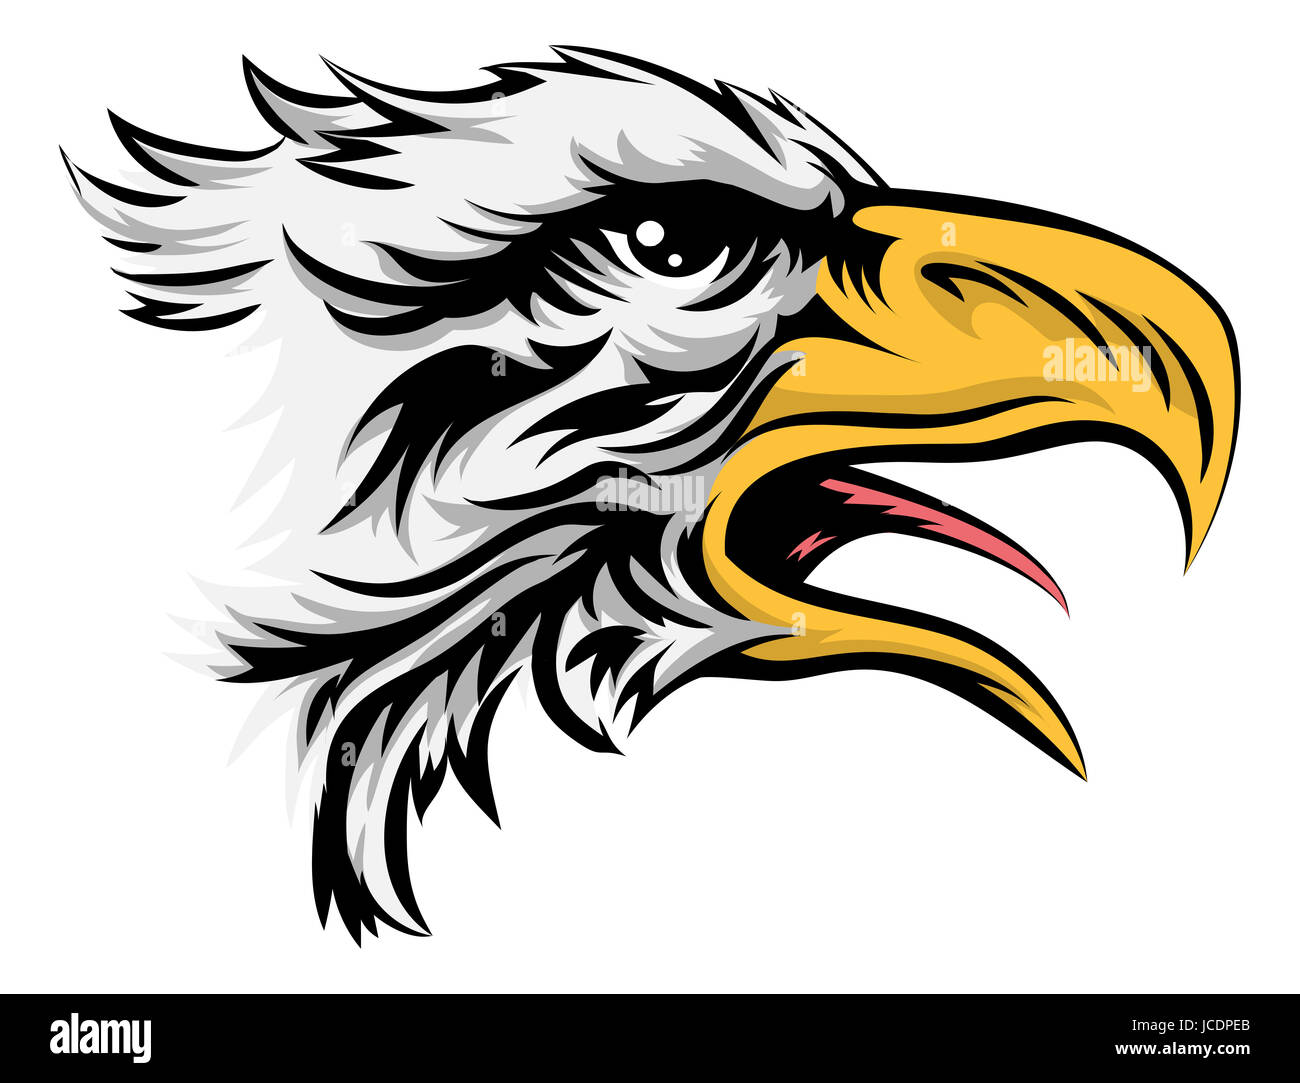 A drawing of a stylised bald eagle bird animal head - Stock Image